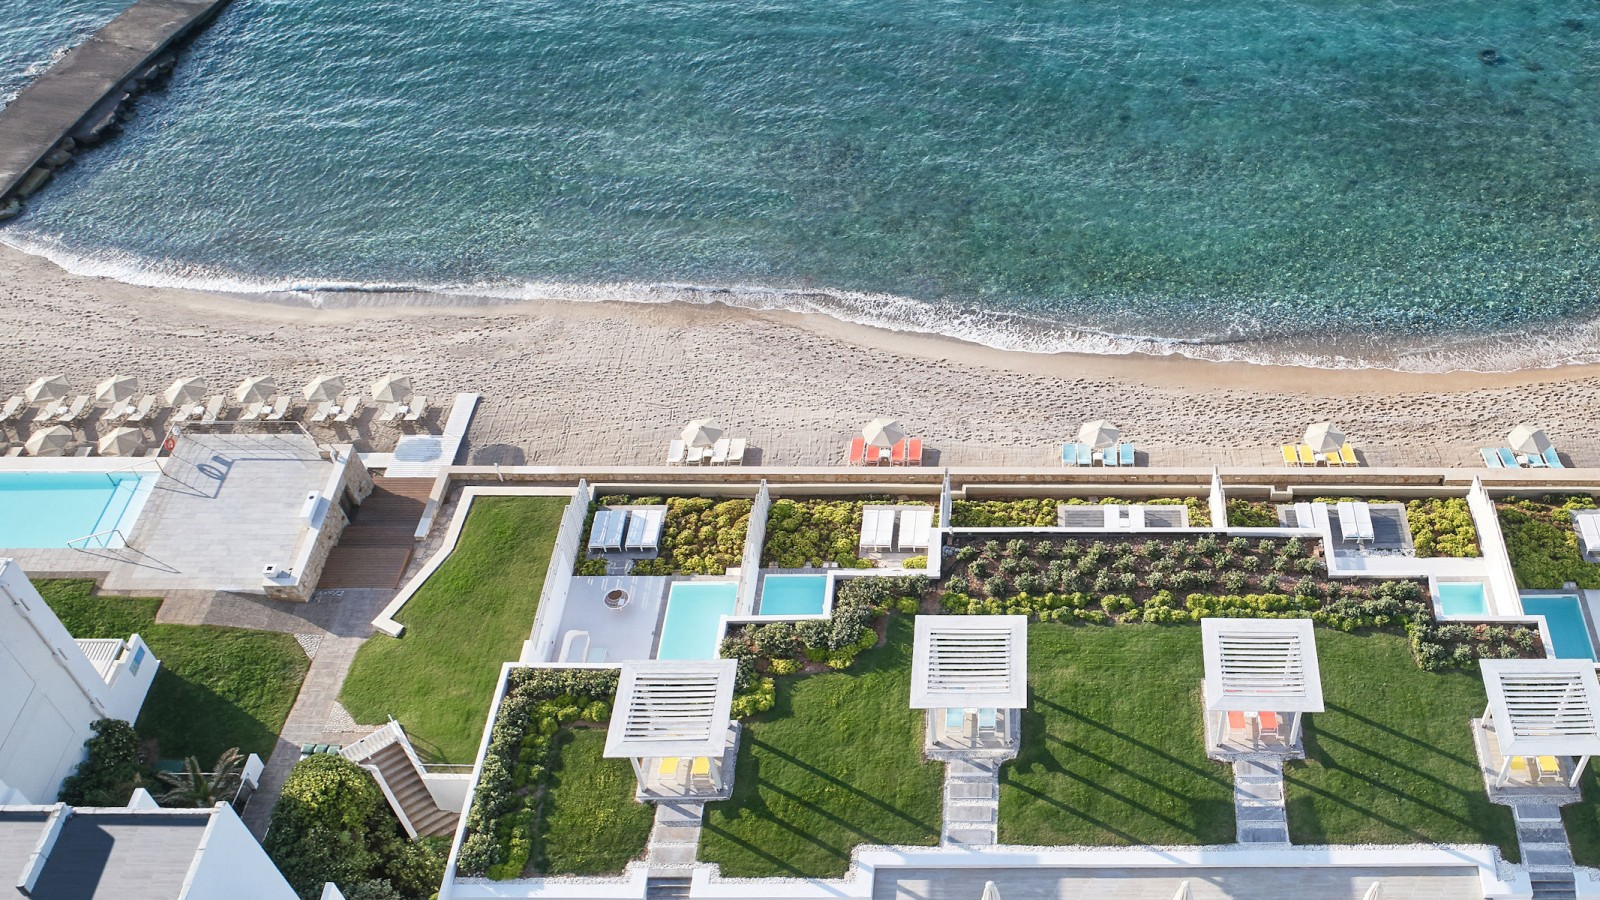 LUX ME White Palace Aerial View